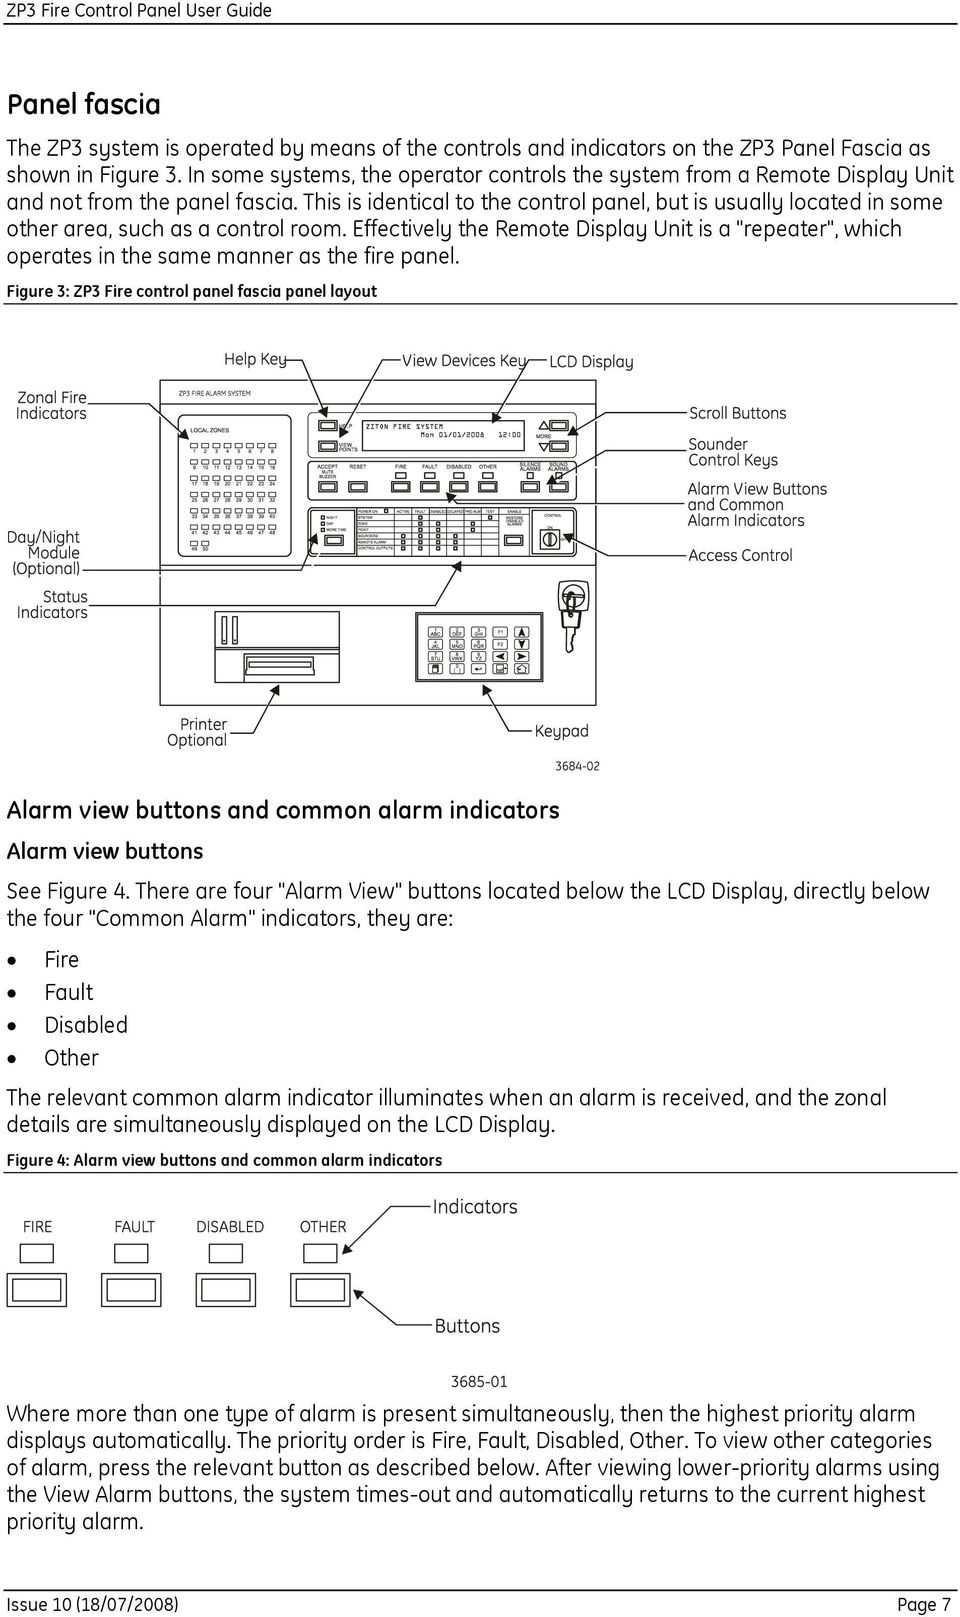 Ge Security Zp3 Fire Control Panel User Guide Pdf Structured Wiring This Is Identical To The But Usually Located In Some Other Area